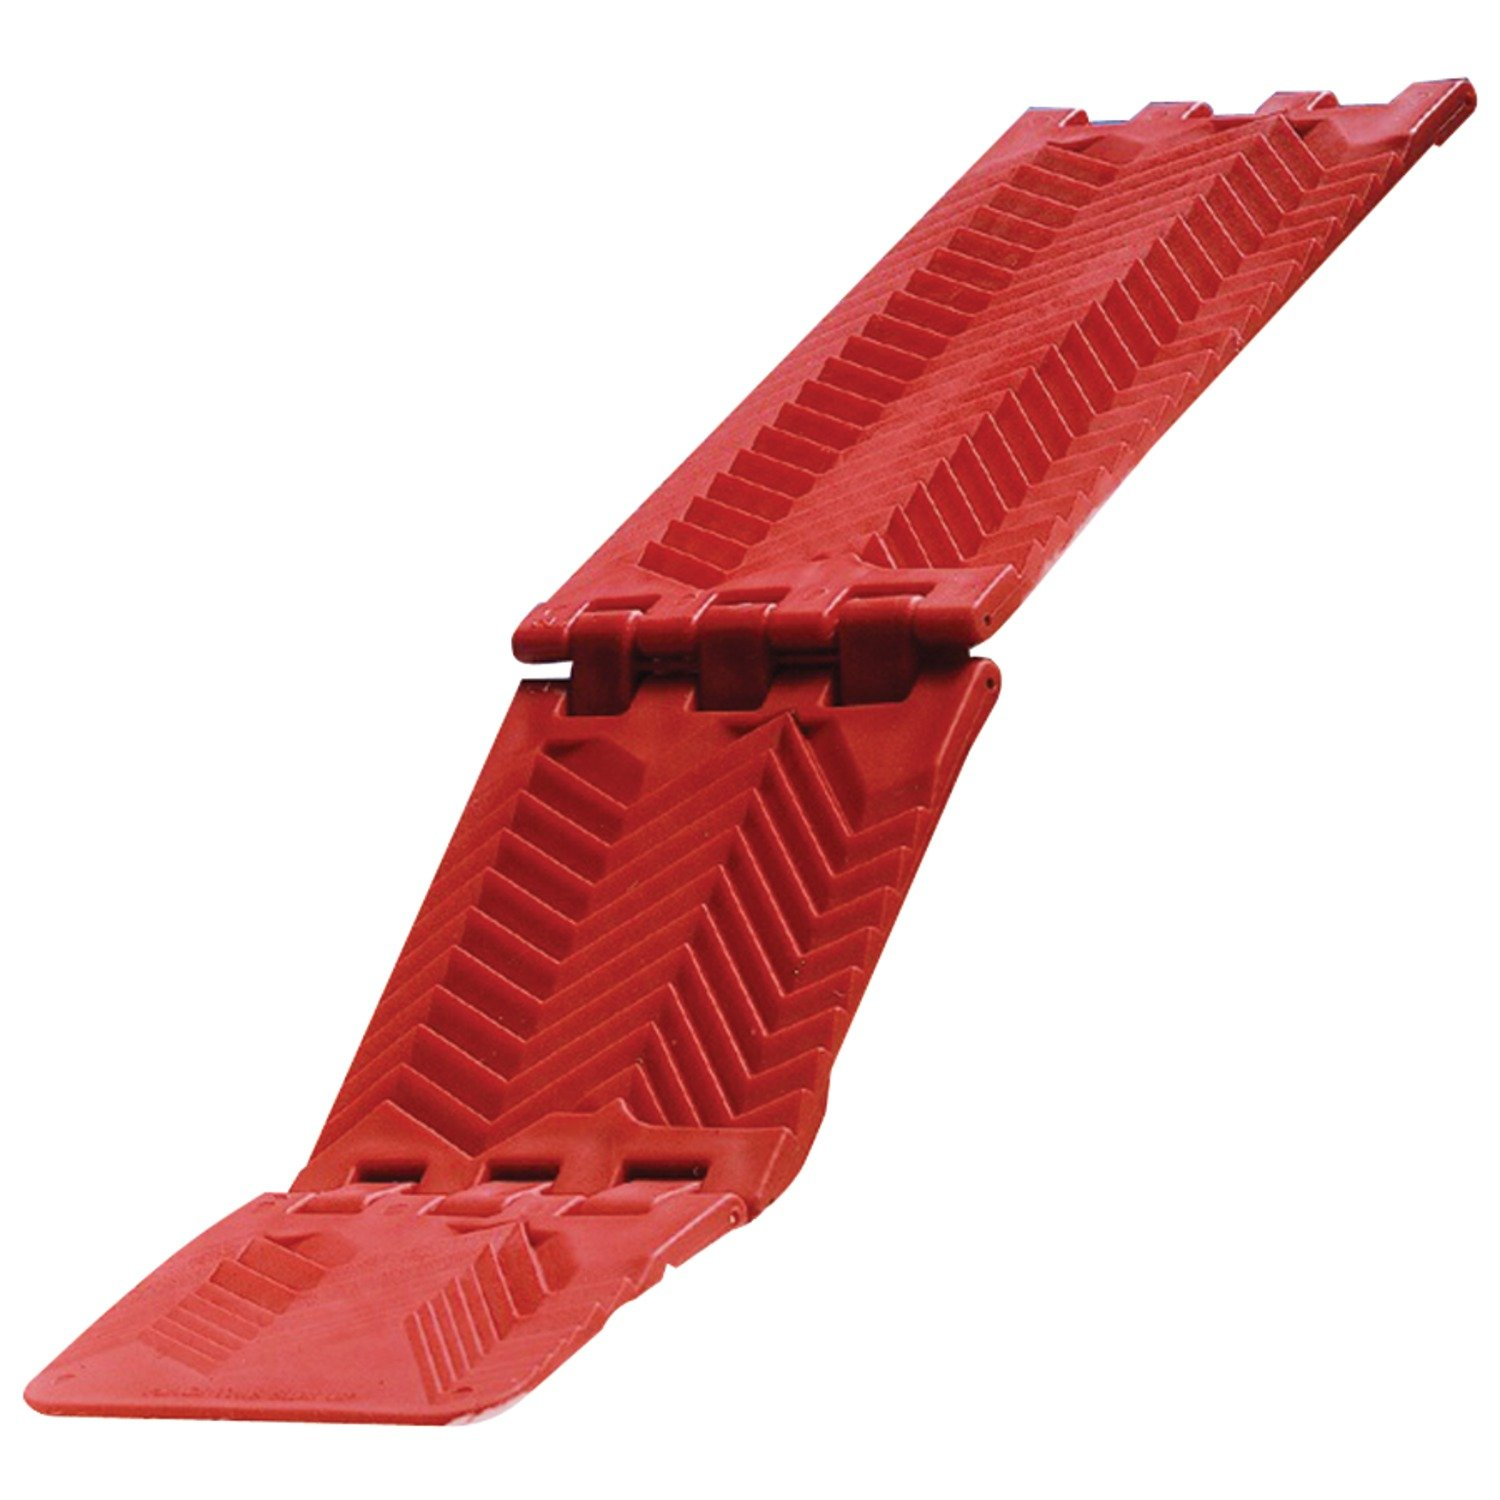 MAXSA Foldable Traction Mat, Car Extraction Mat for tires stuck in Snow, Sand & Mud, Red 20025 Petra Industries (sports)